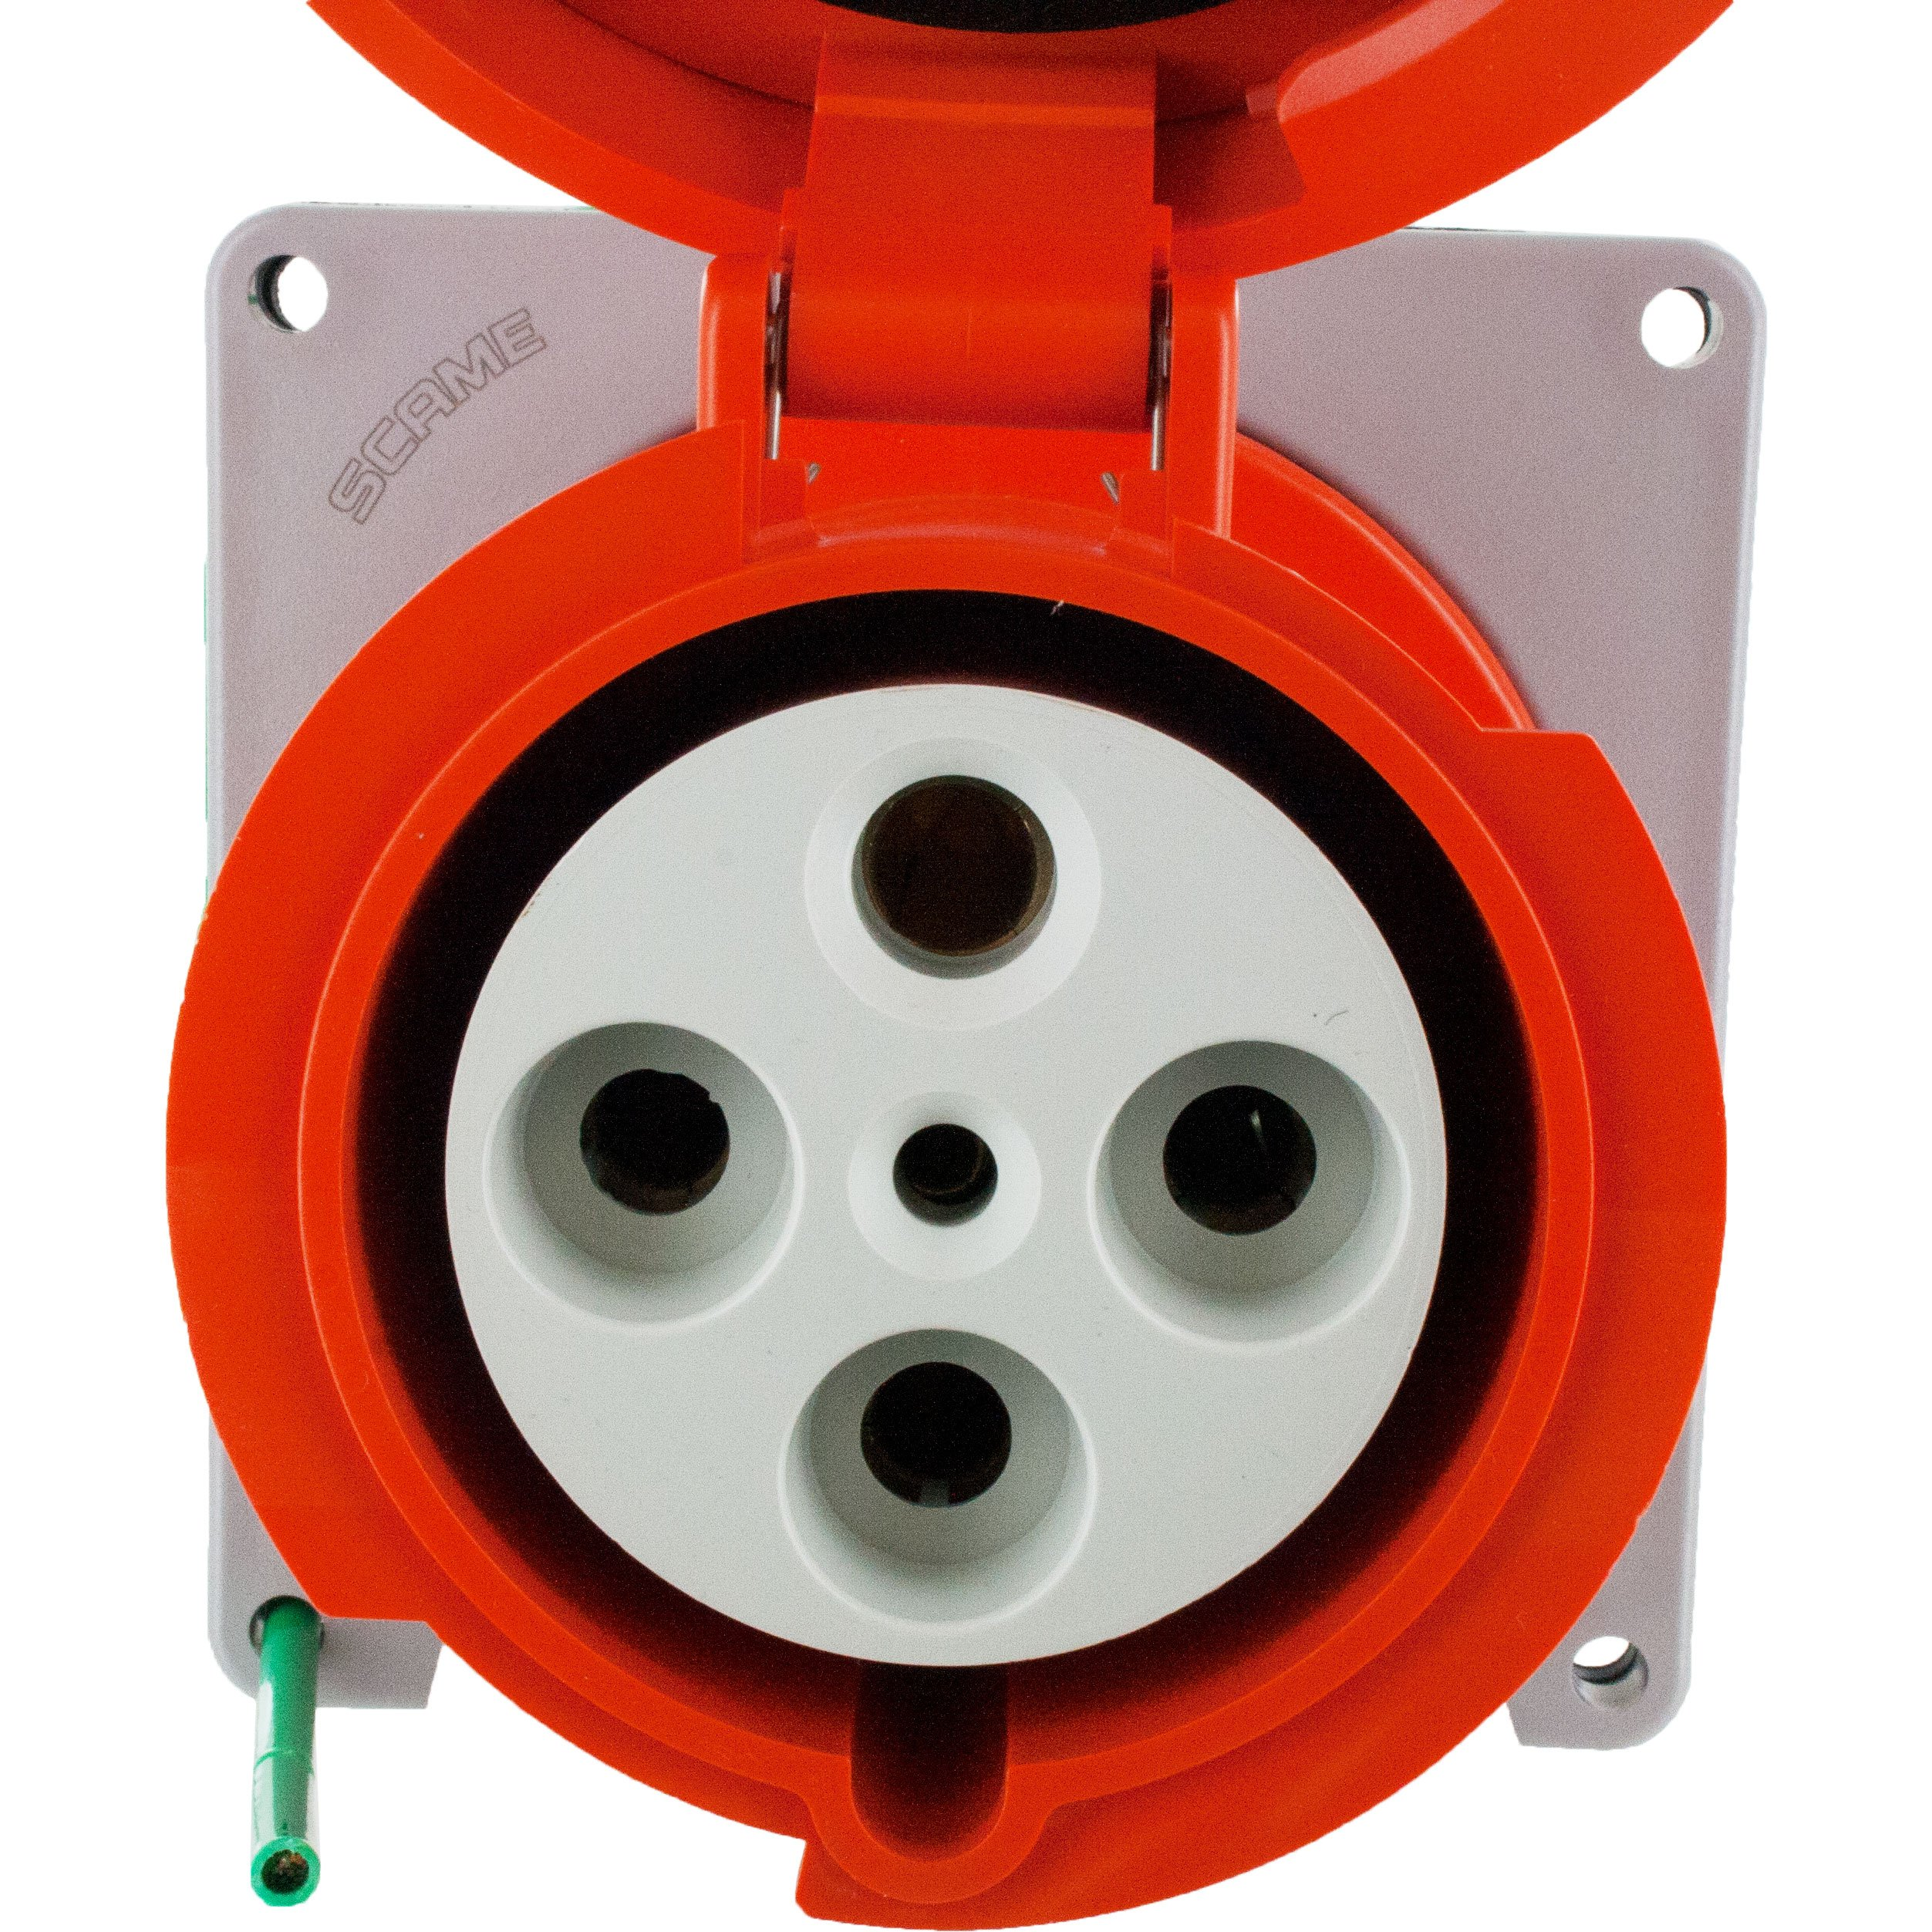 4100r12w Pin And Sleeve Receptacle 100 Amp 3 Pole 4 Wire Elecdirect Wiring Receptacles